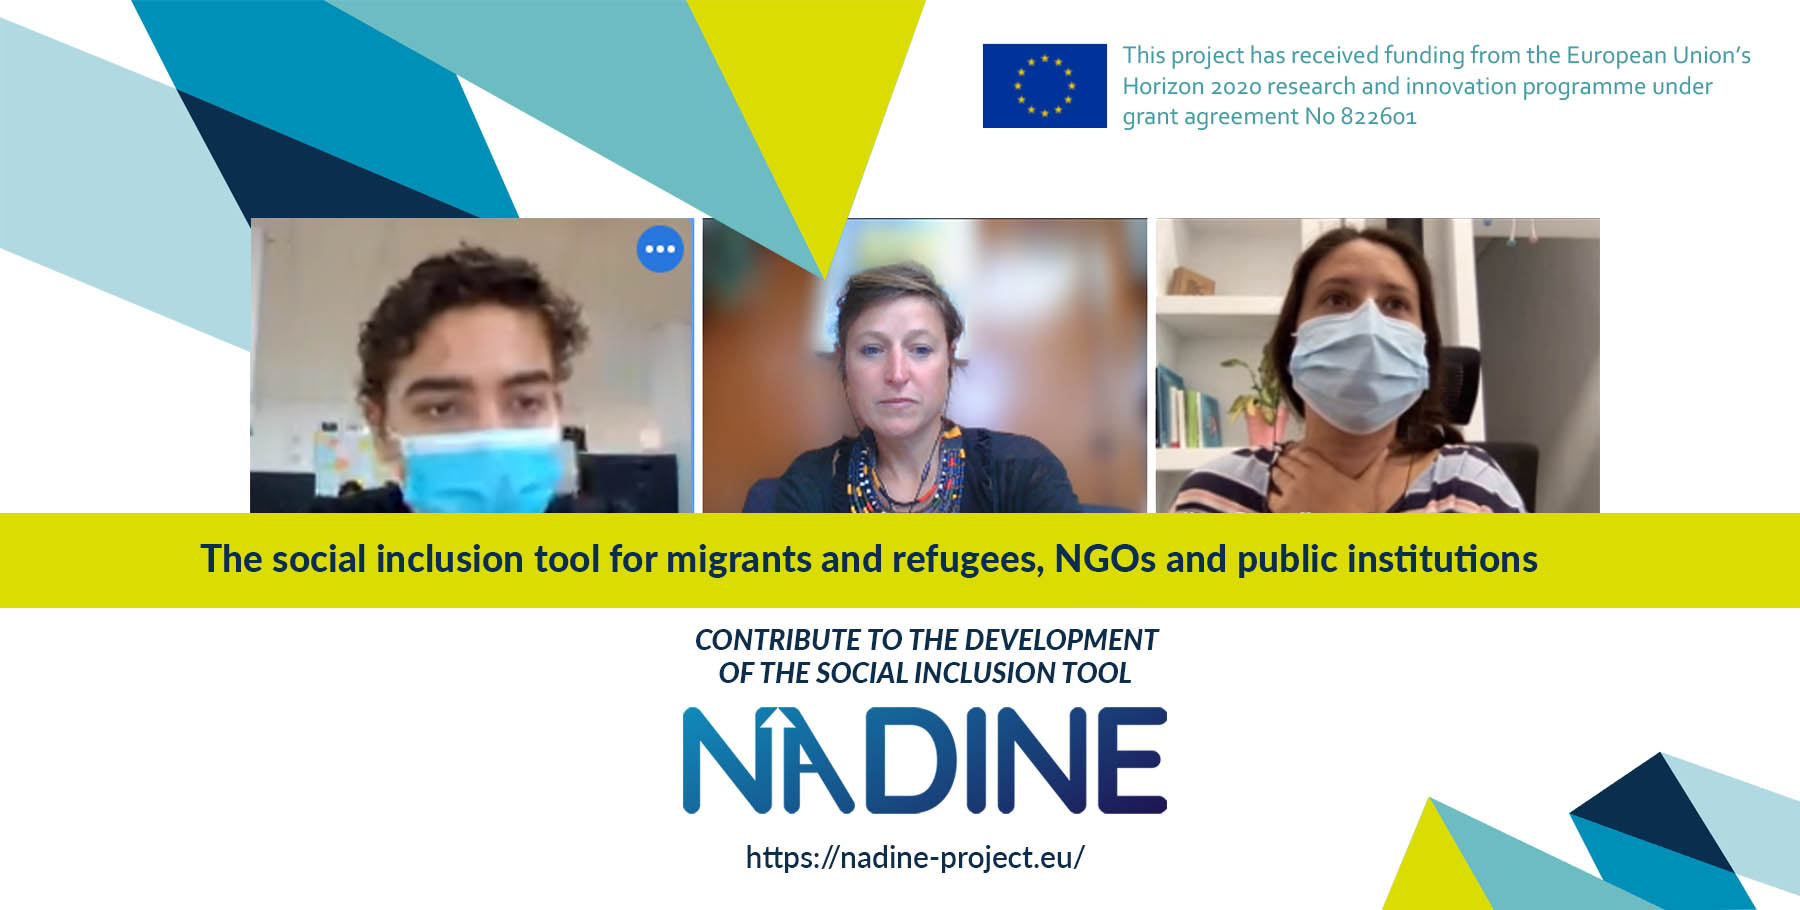 NADINE pilot phase completed: employment and training for the integration of migrants, refugees and asylum seekers